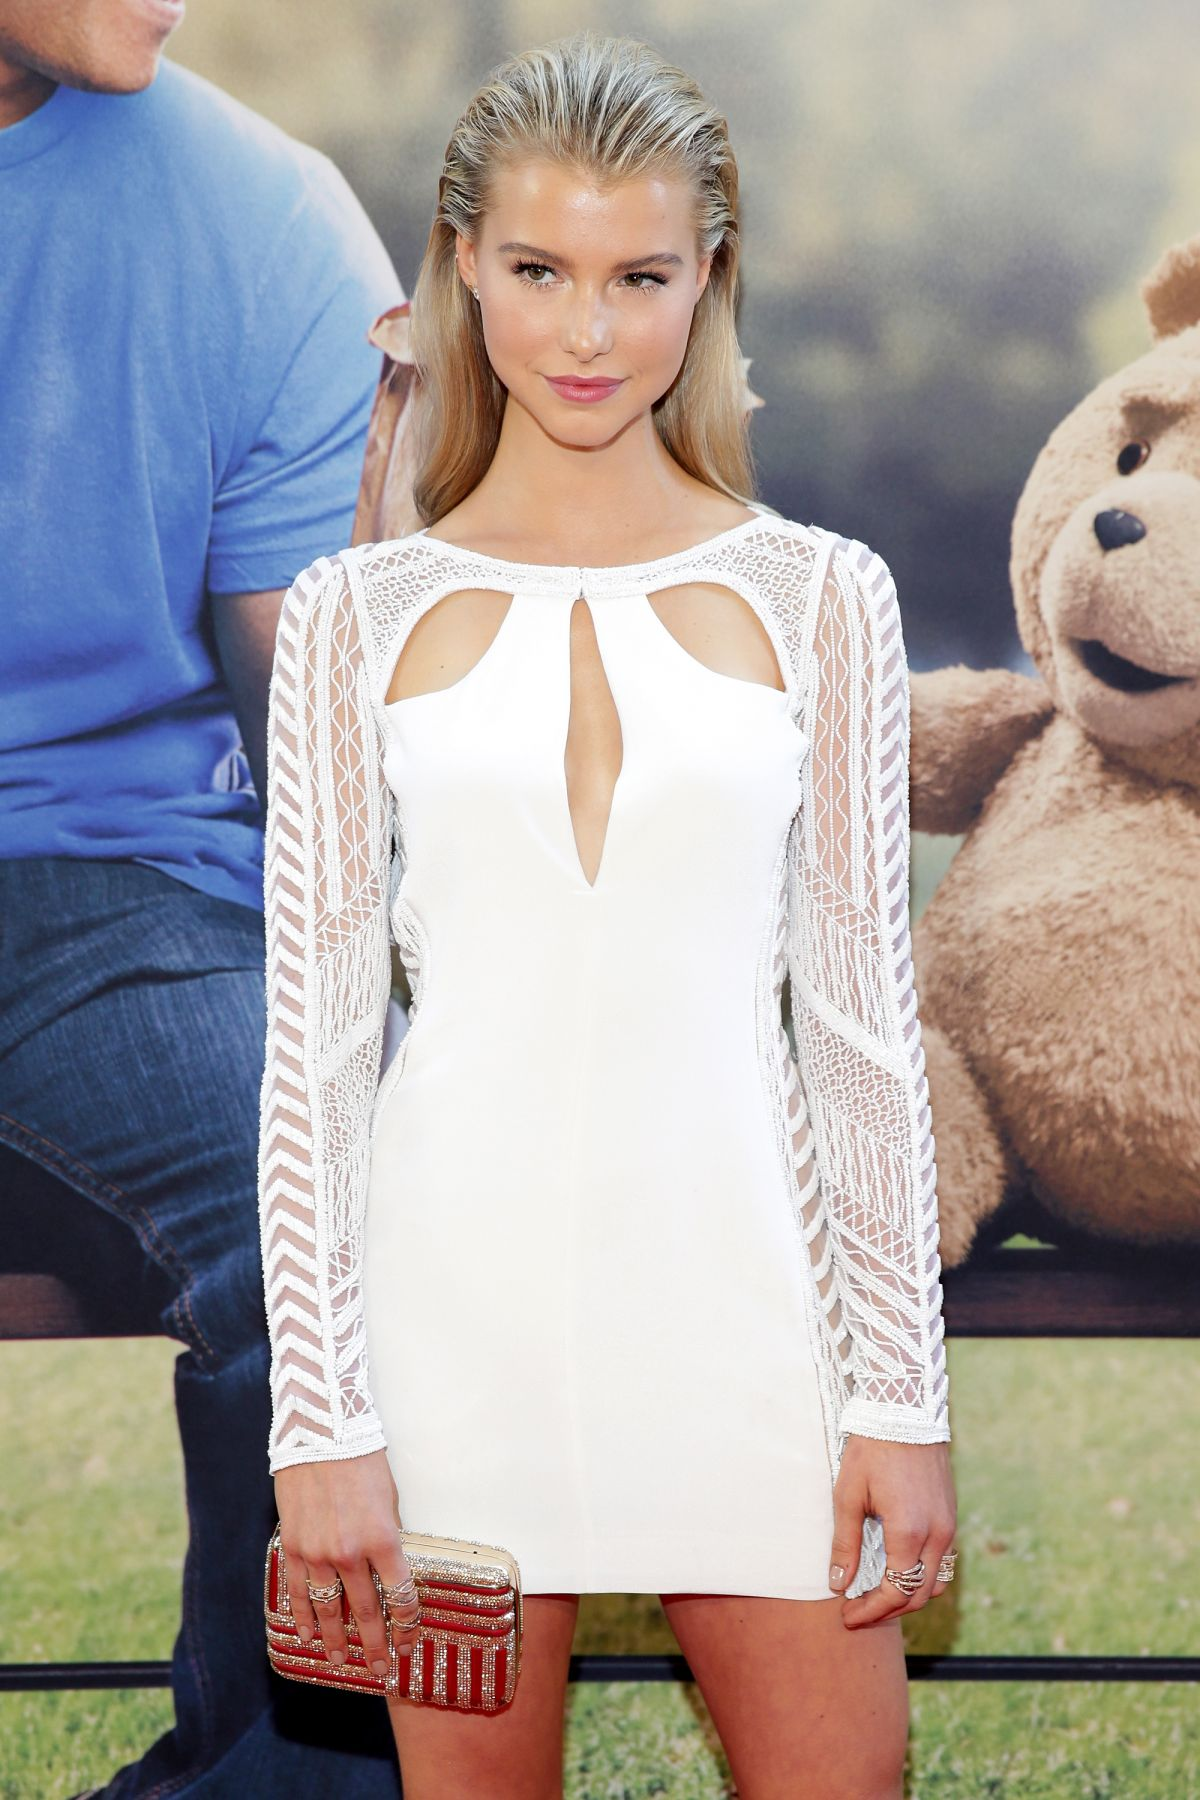 LEXI ATKINS at Ted 2 Premiere in New York